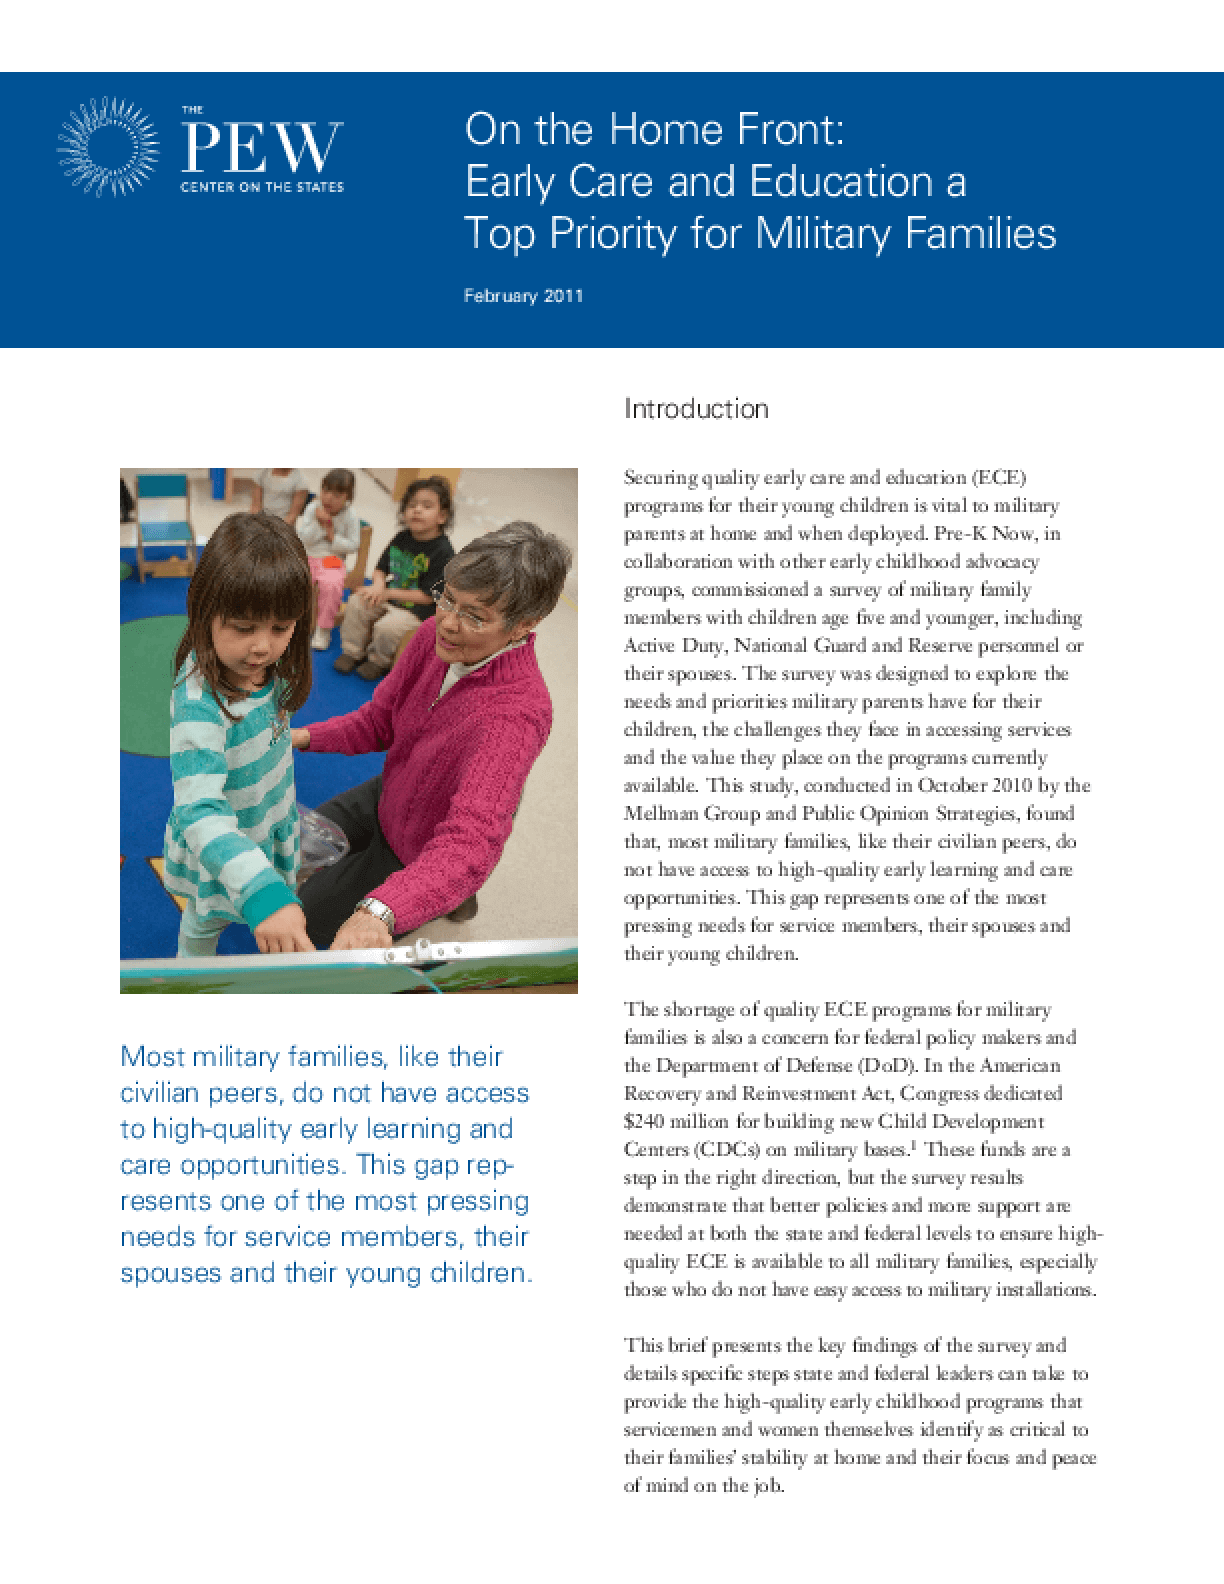 On the Home Front: Early Care and Education a Top Priority for Military Families